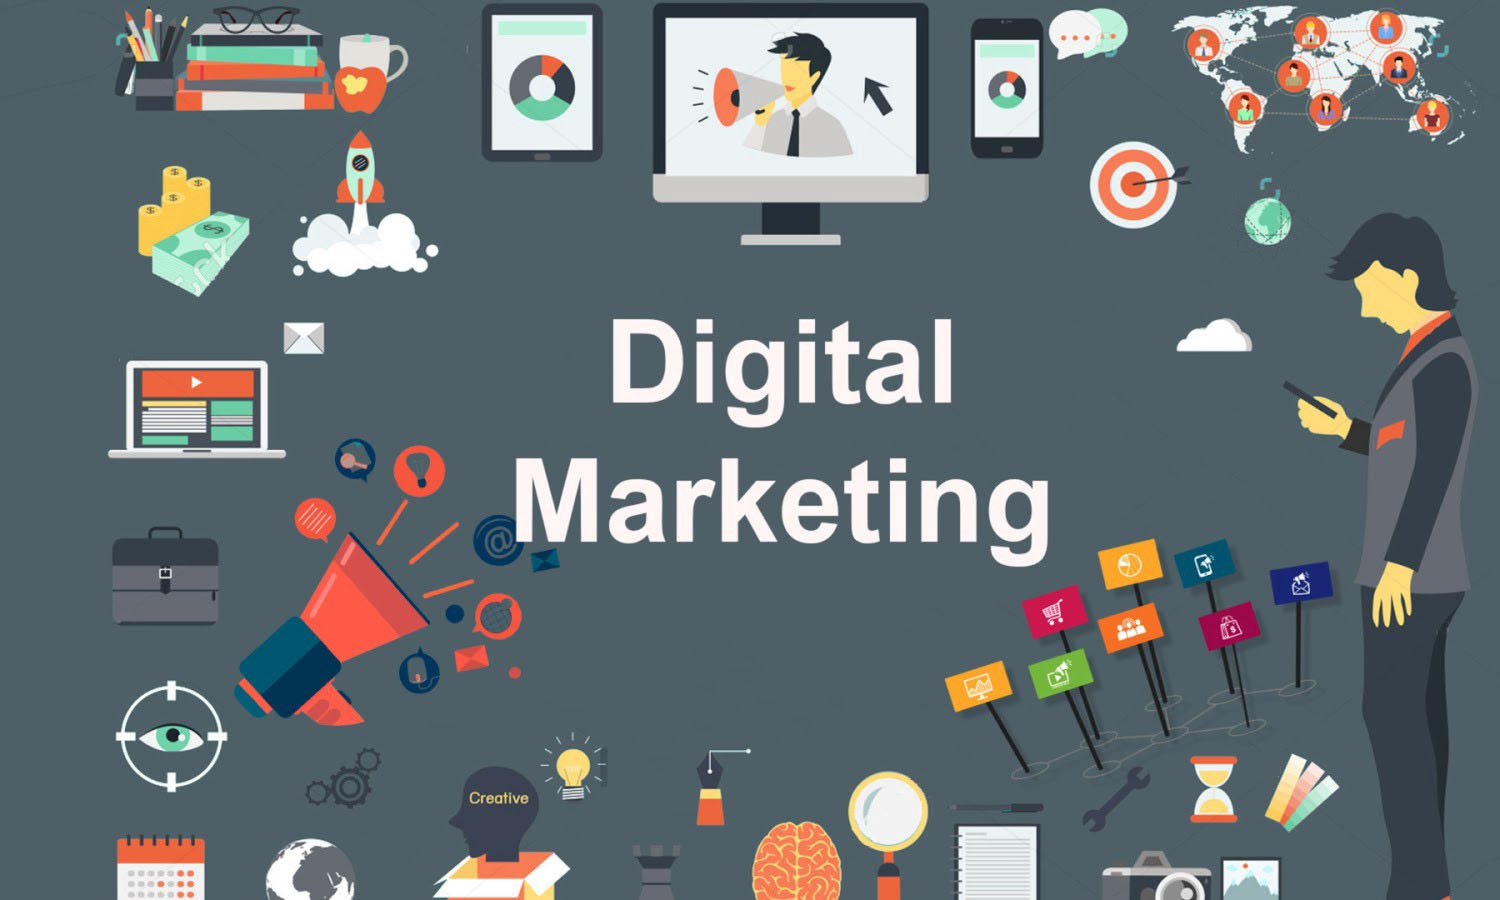 4 Ways to Grow Your New Brand with Digital Marketing